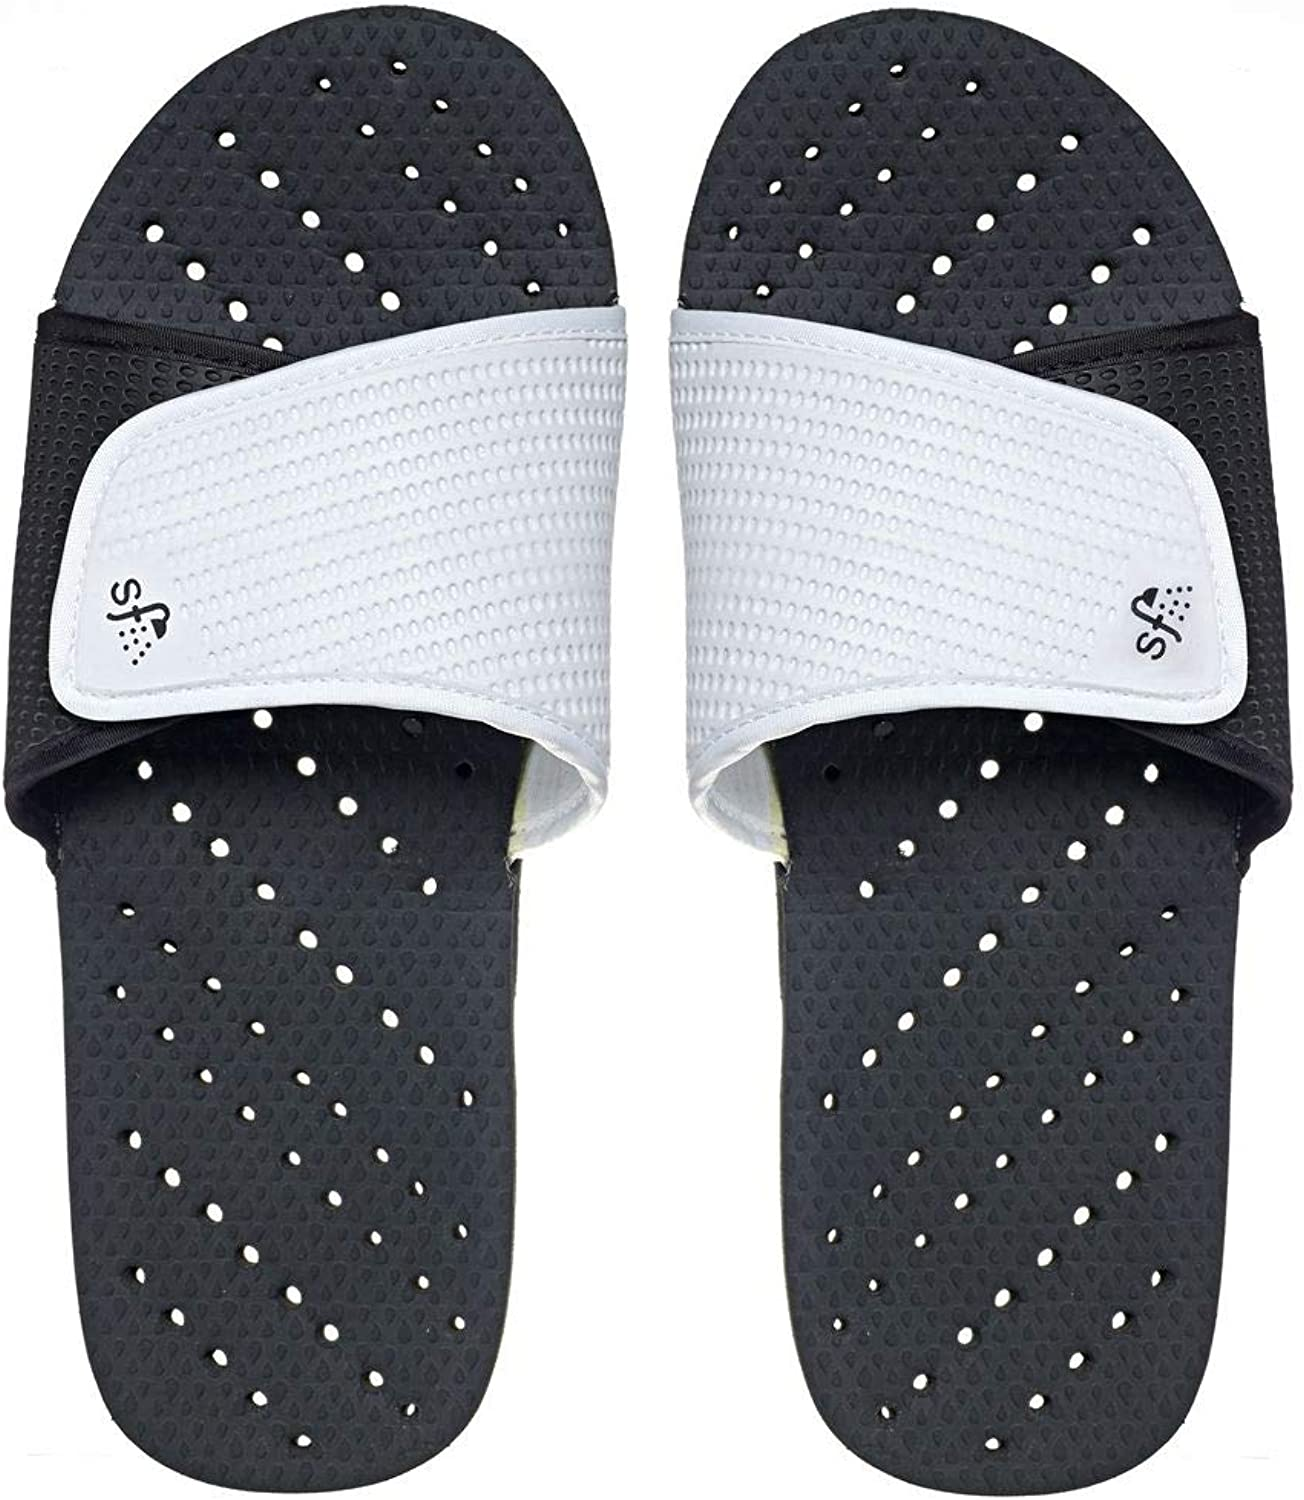 Showaflops Boys' Antimicrobial Shower & Water Sandals for Pool, Beach, Camp and Gym - Adjustable colorblock Slide